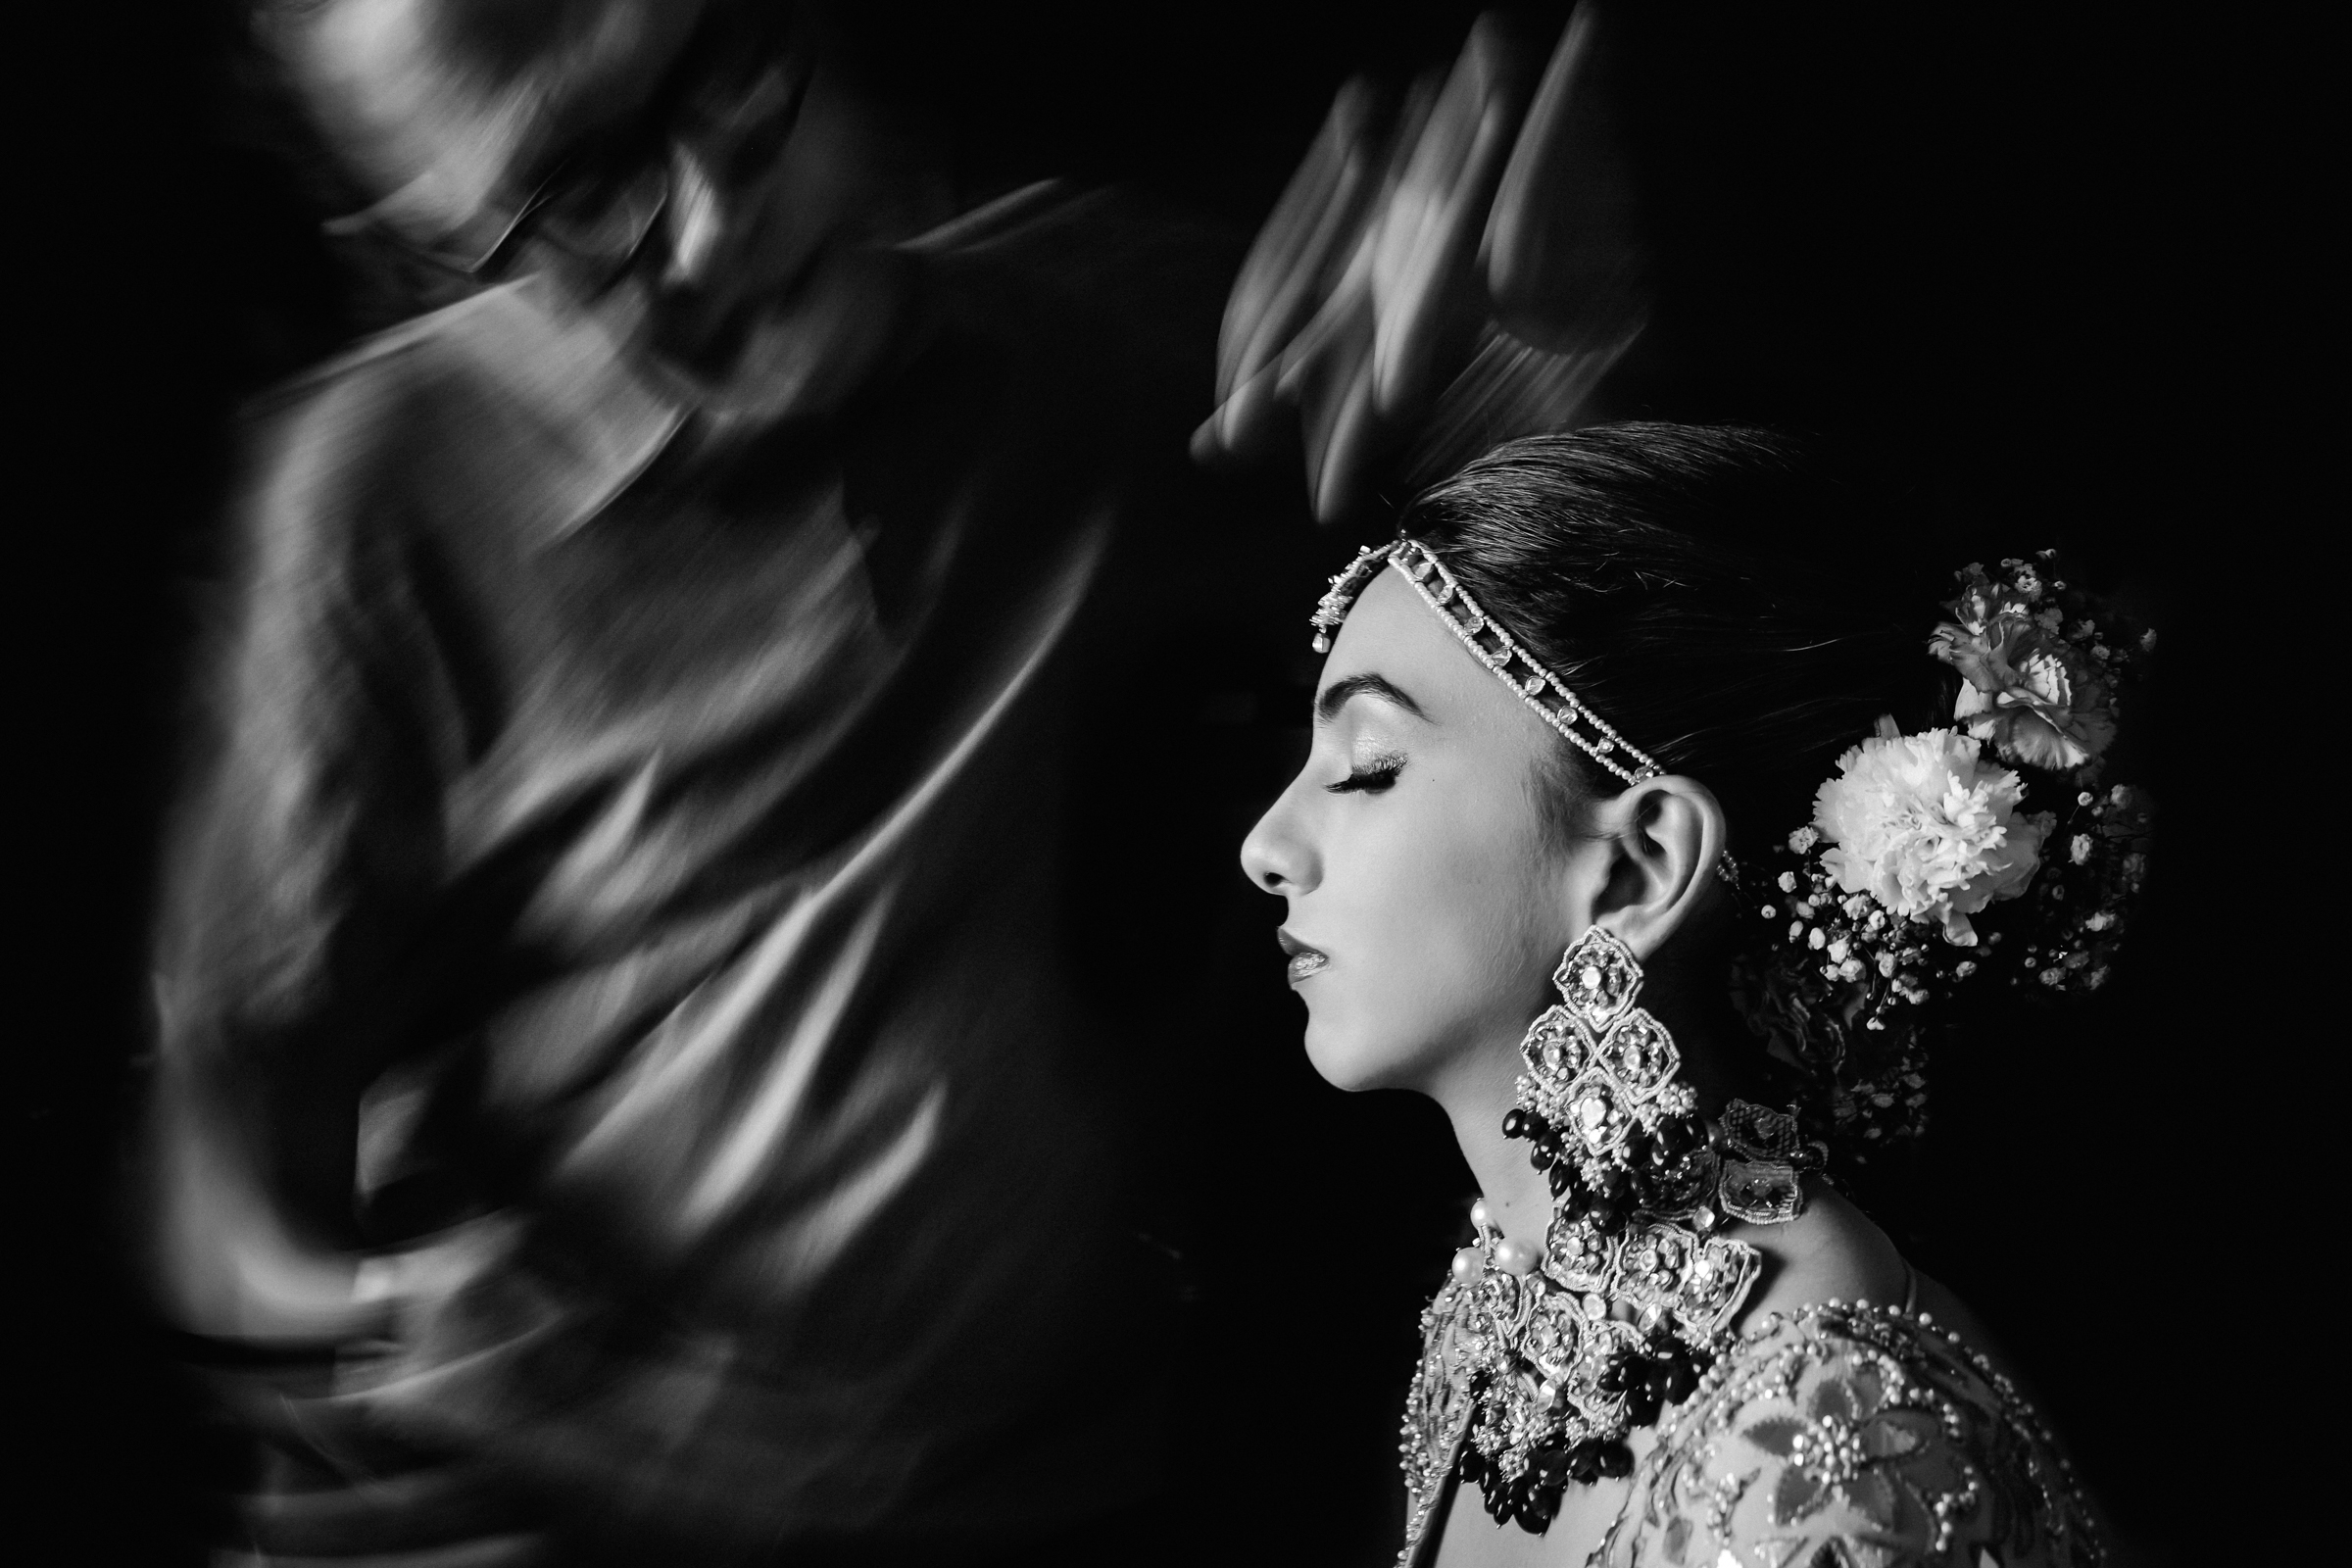 blessing-in-motion-of-serene-bride-william-lambelet-photography